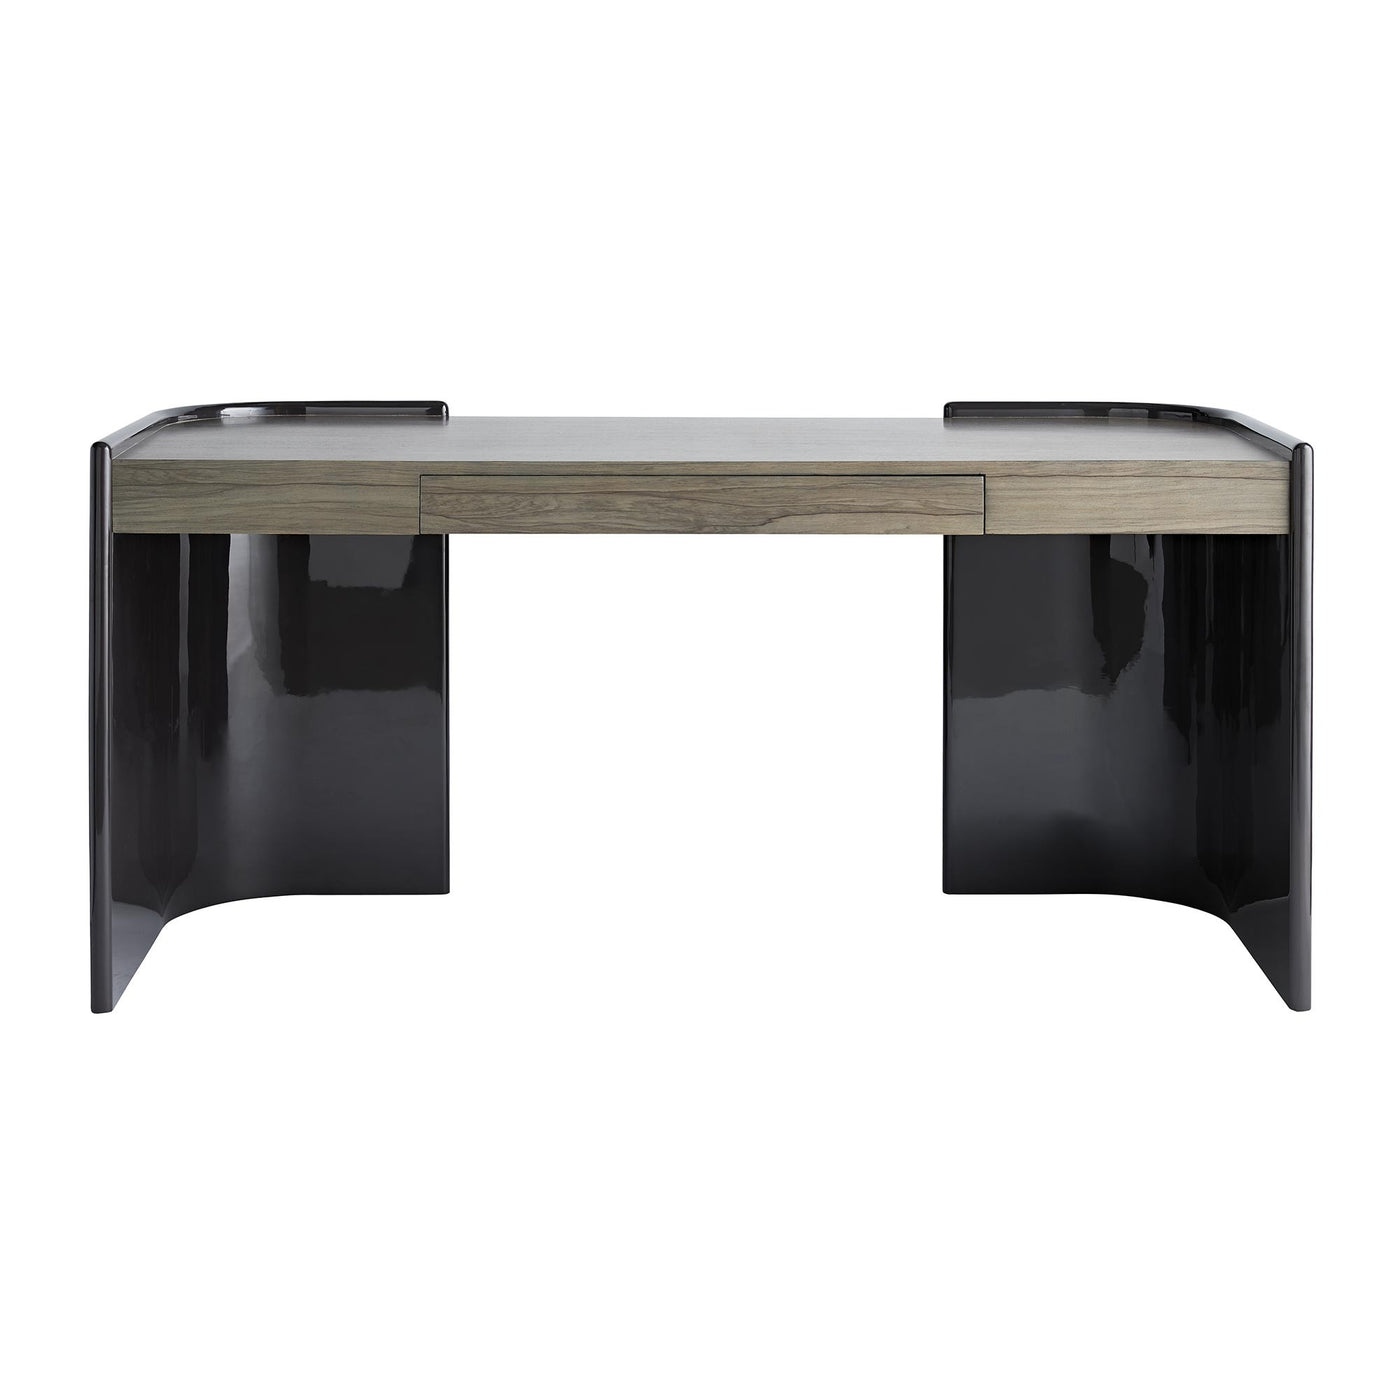 arteriors Parnell desk front view